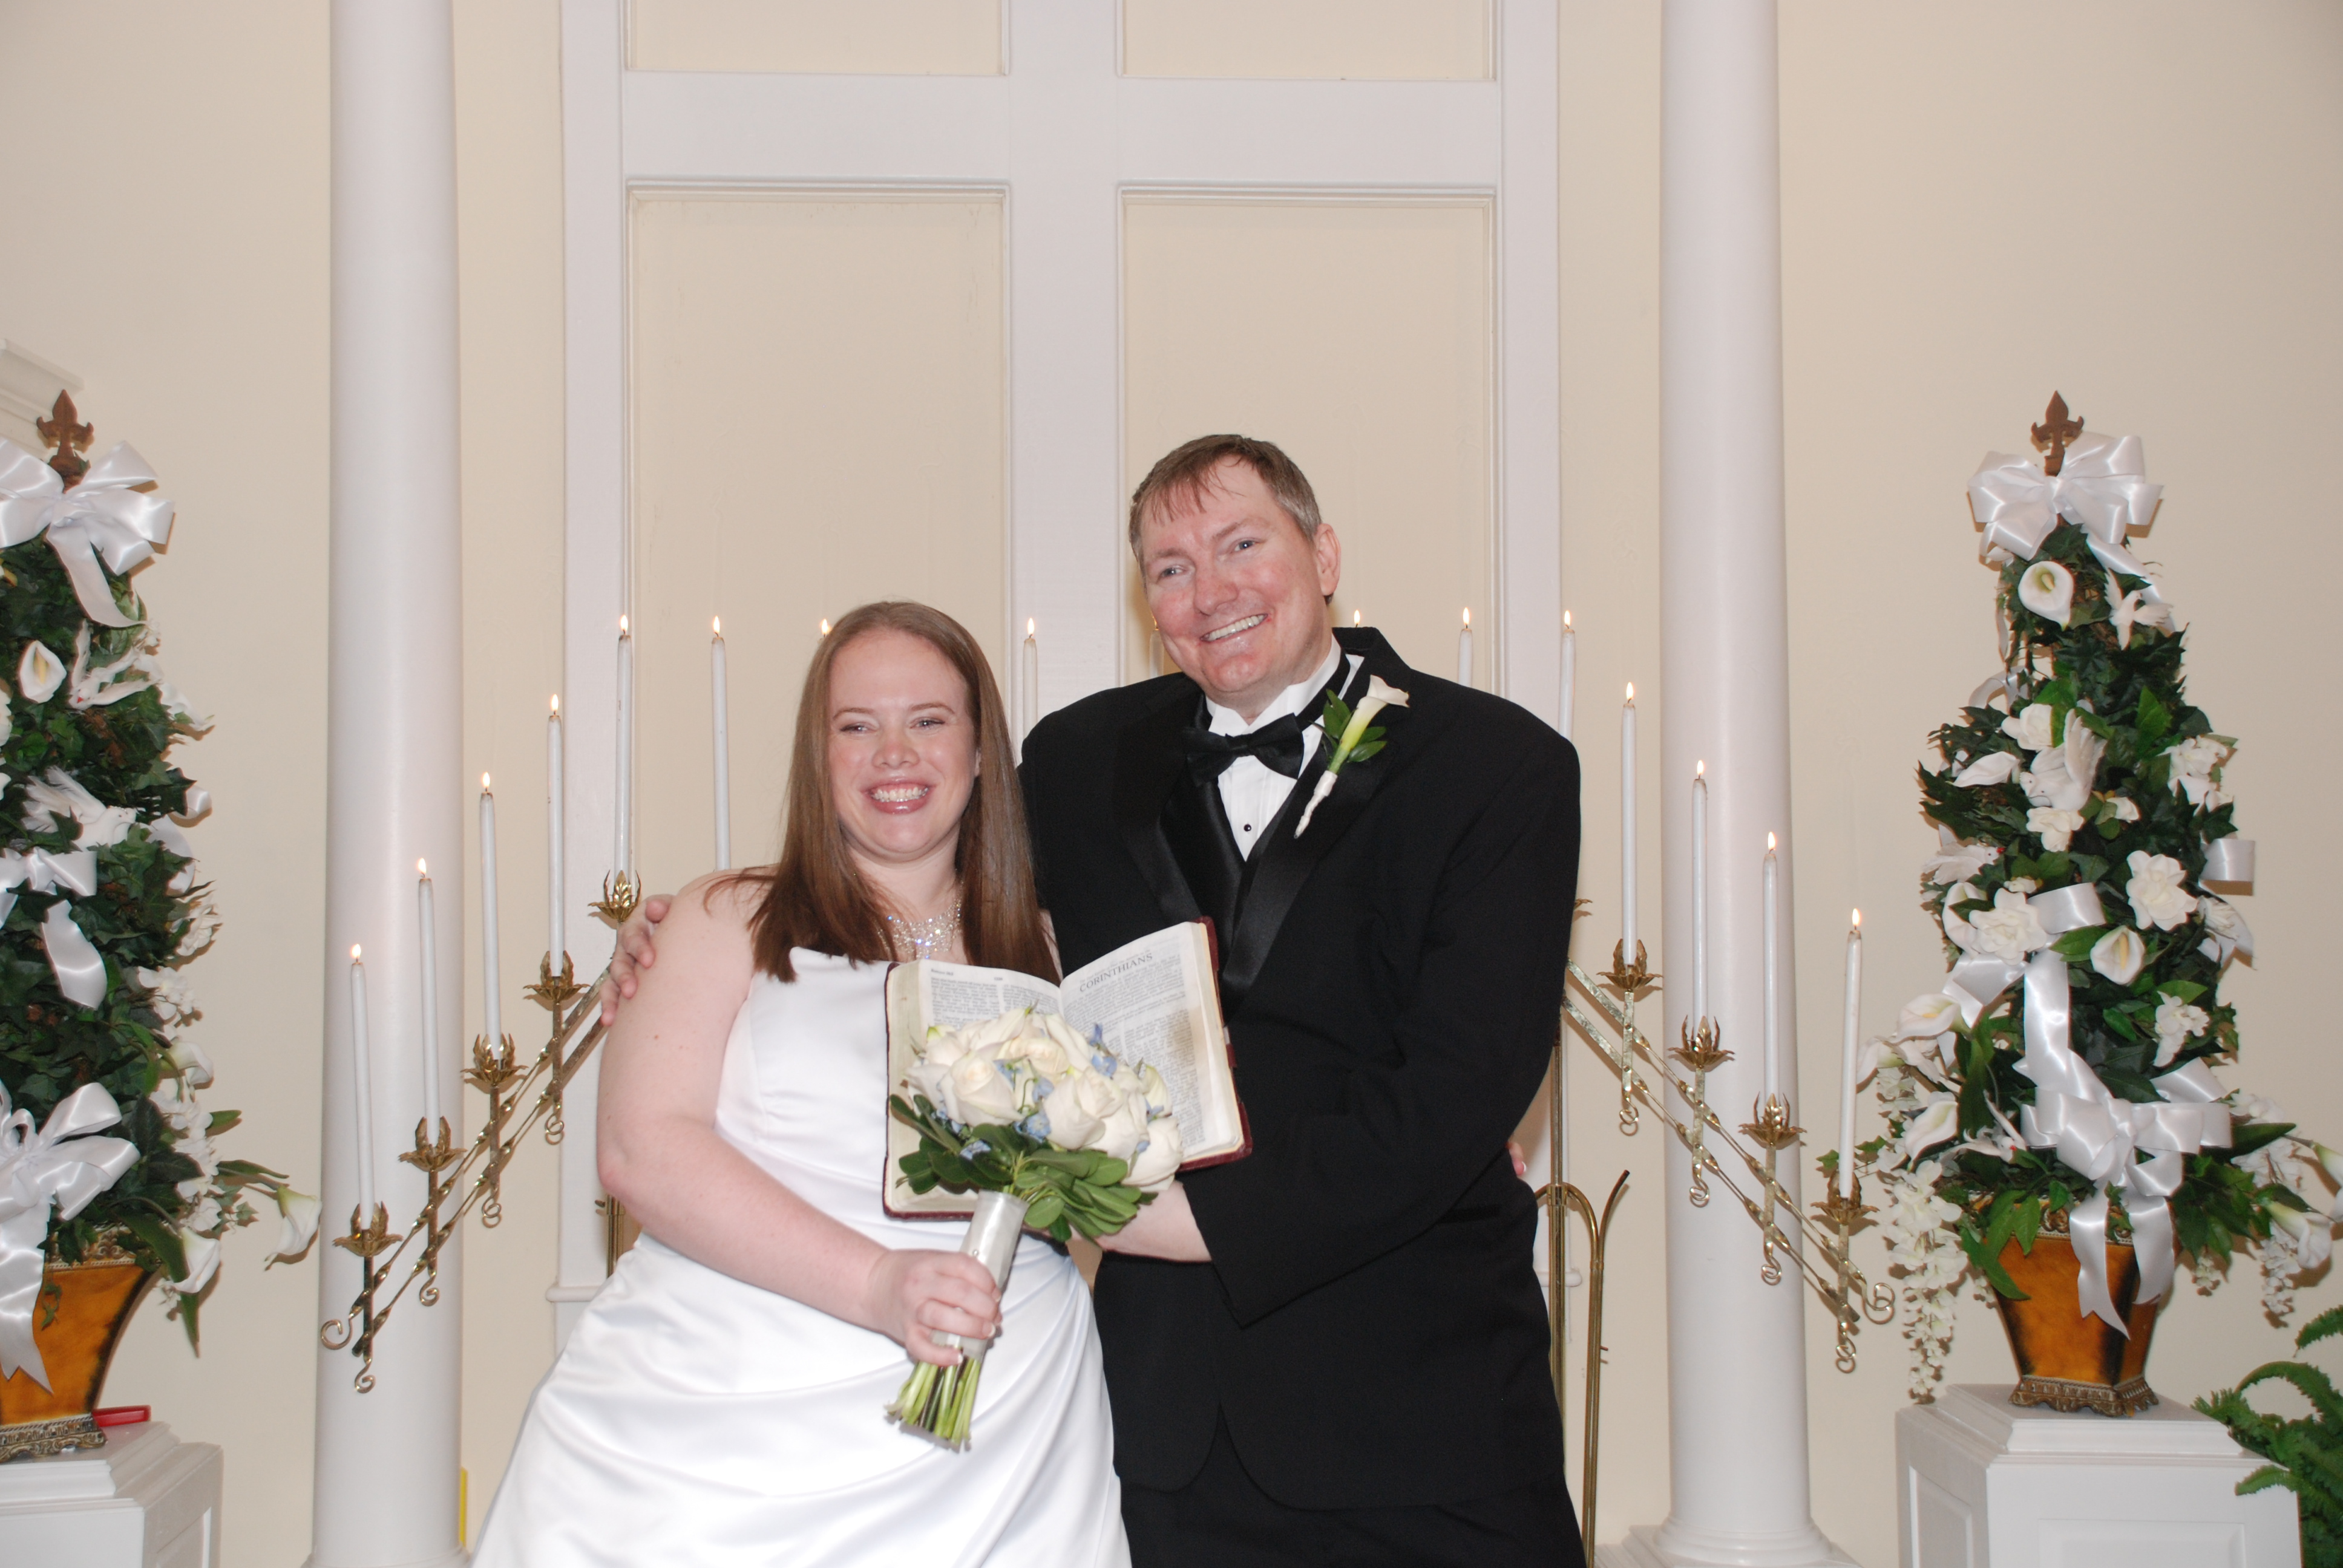 Virginia Beach Wedding And Reception Packages